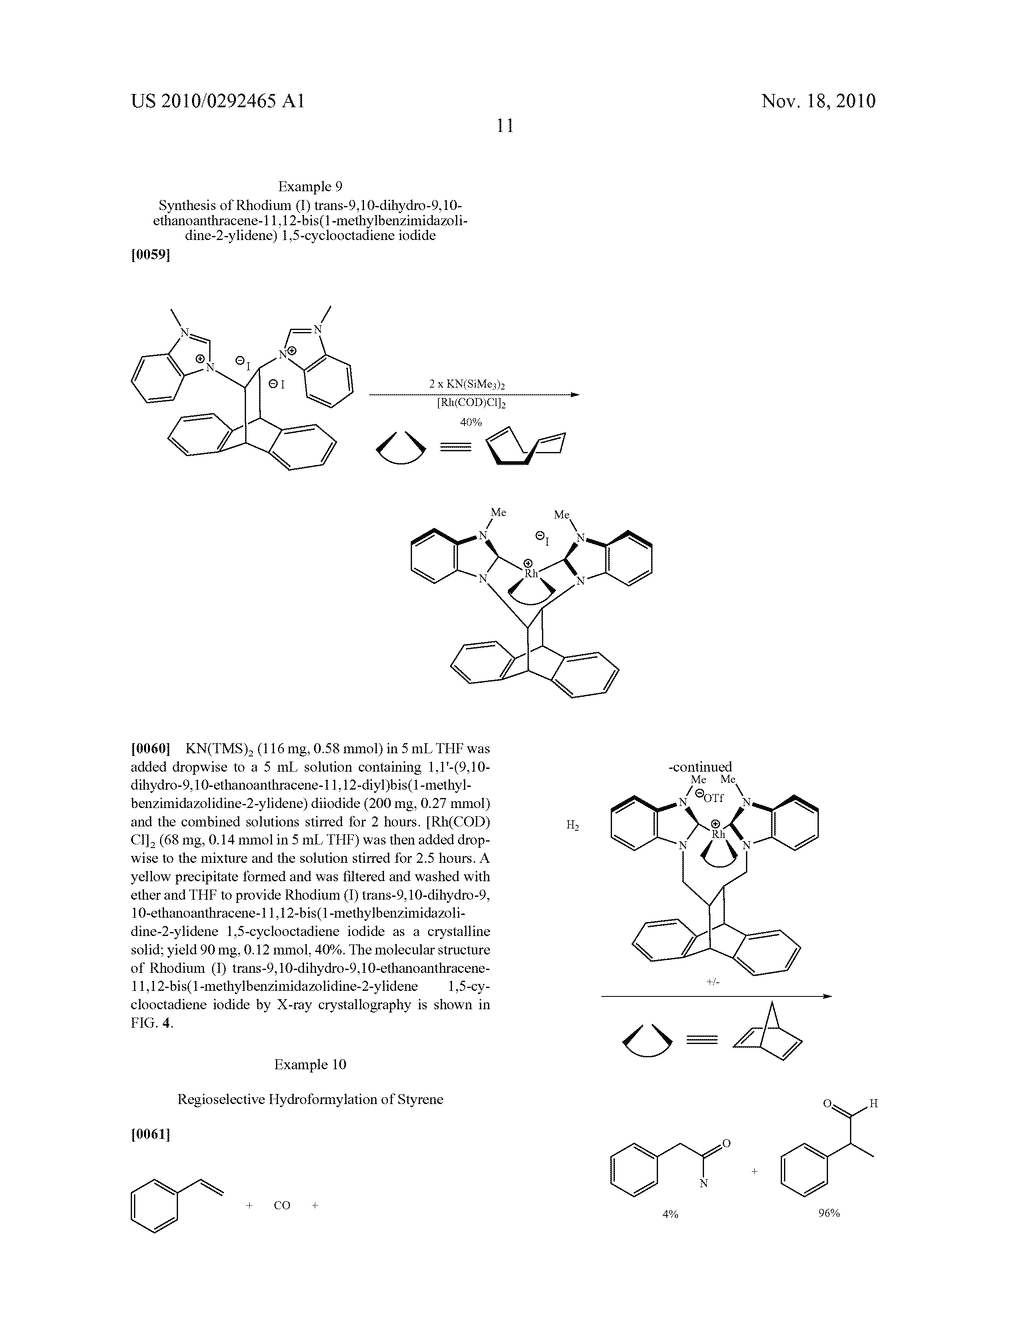 CATALYSTS CONTAINING N-HETEROCYCLIC CARBENES FOR ENANTIOSELECTIVE SYNTHESIS - diagram, schematic, and image 16